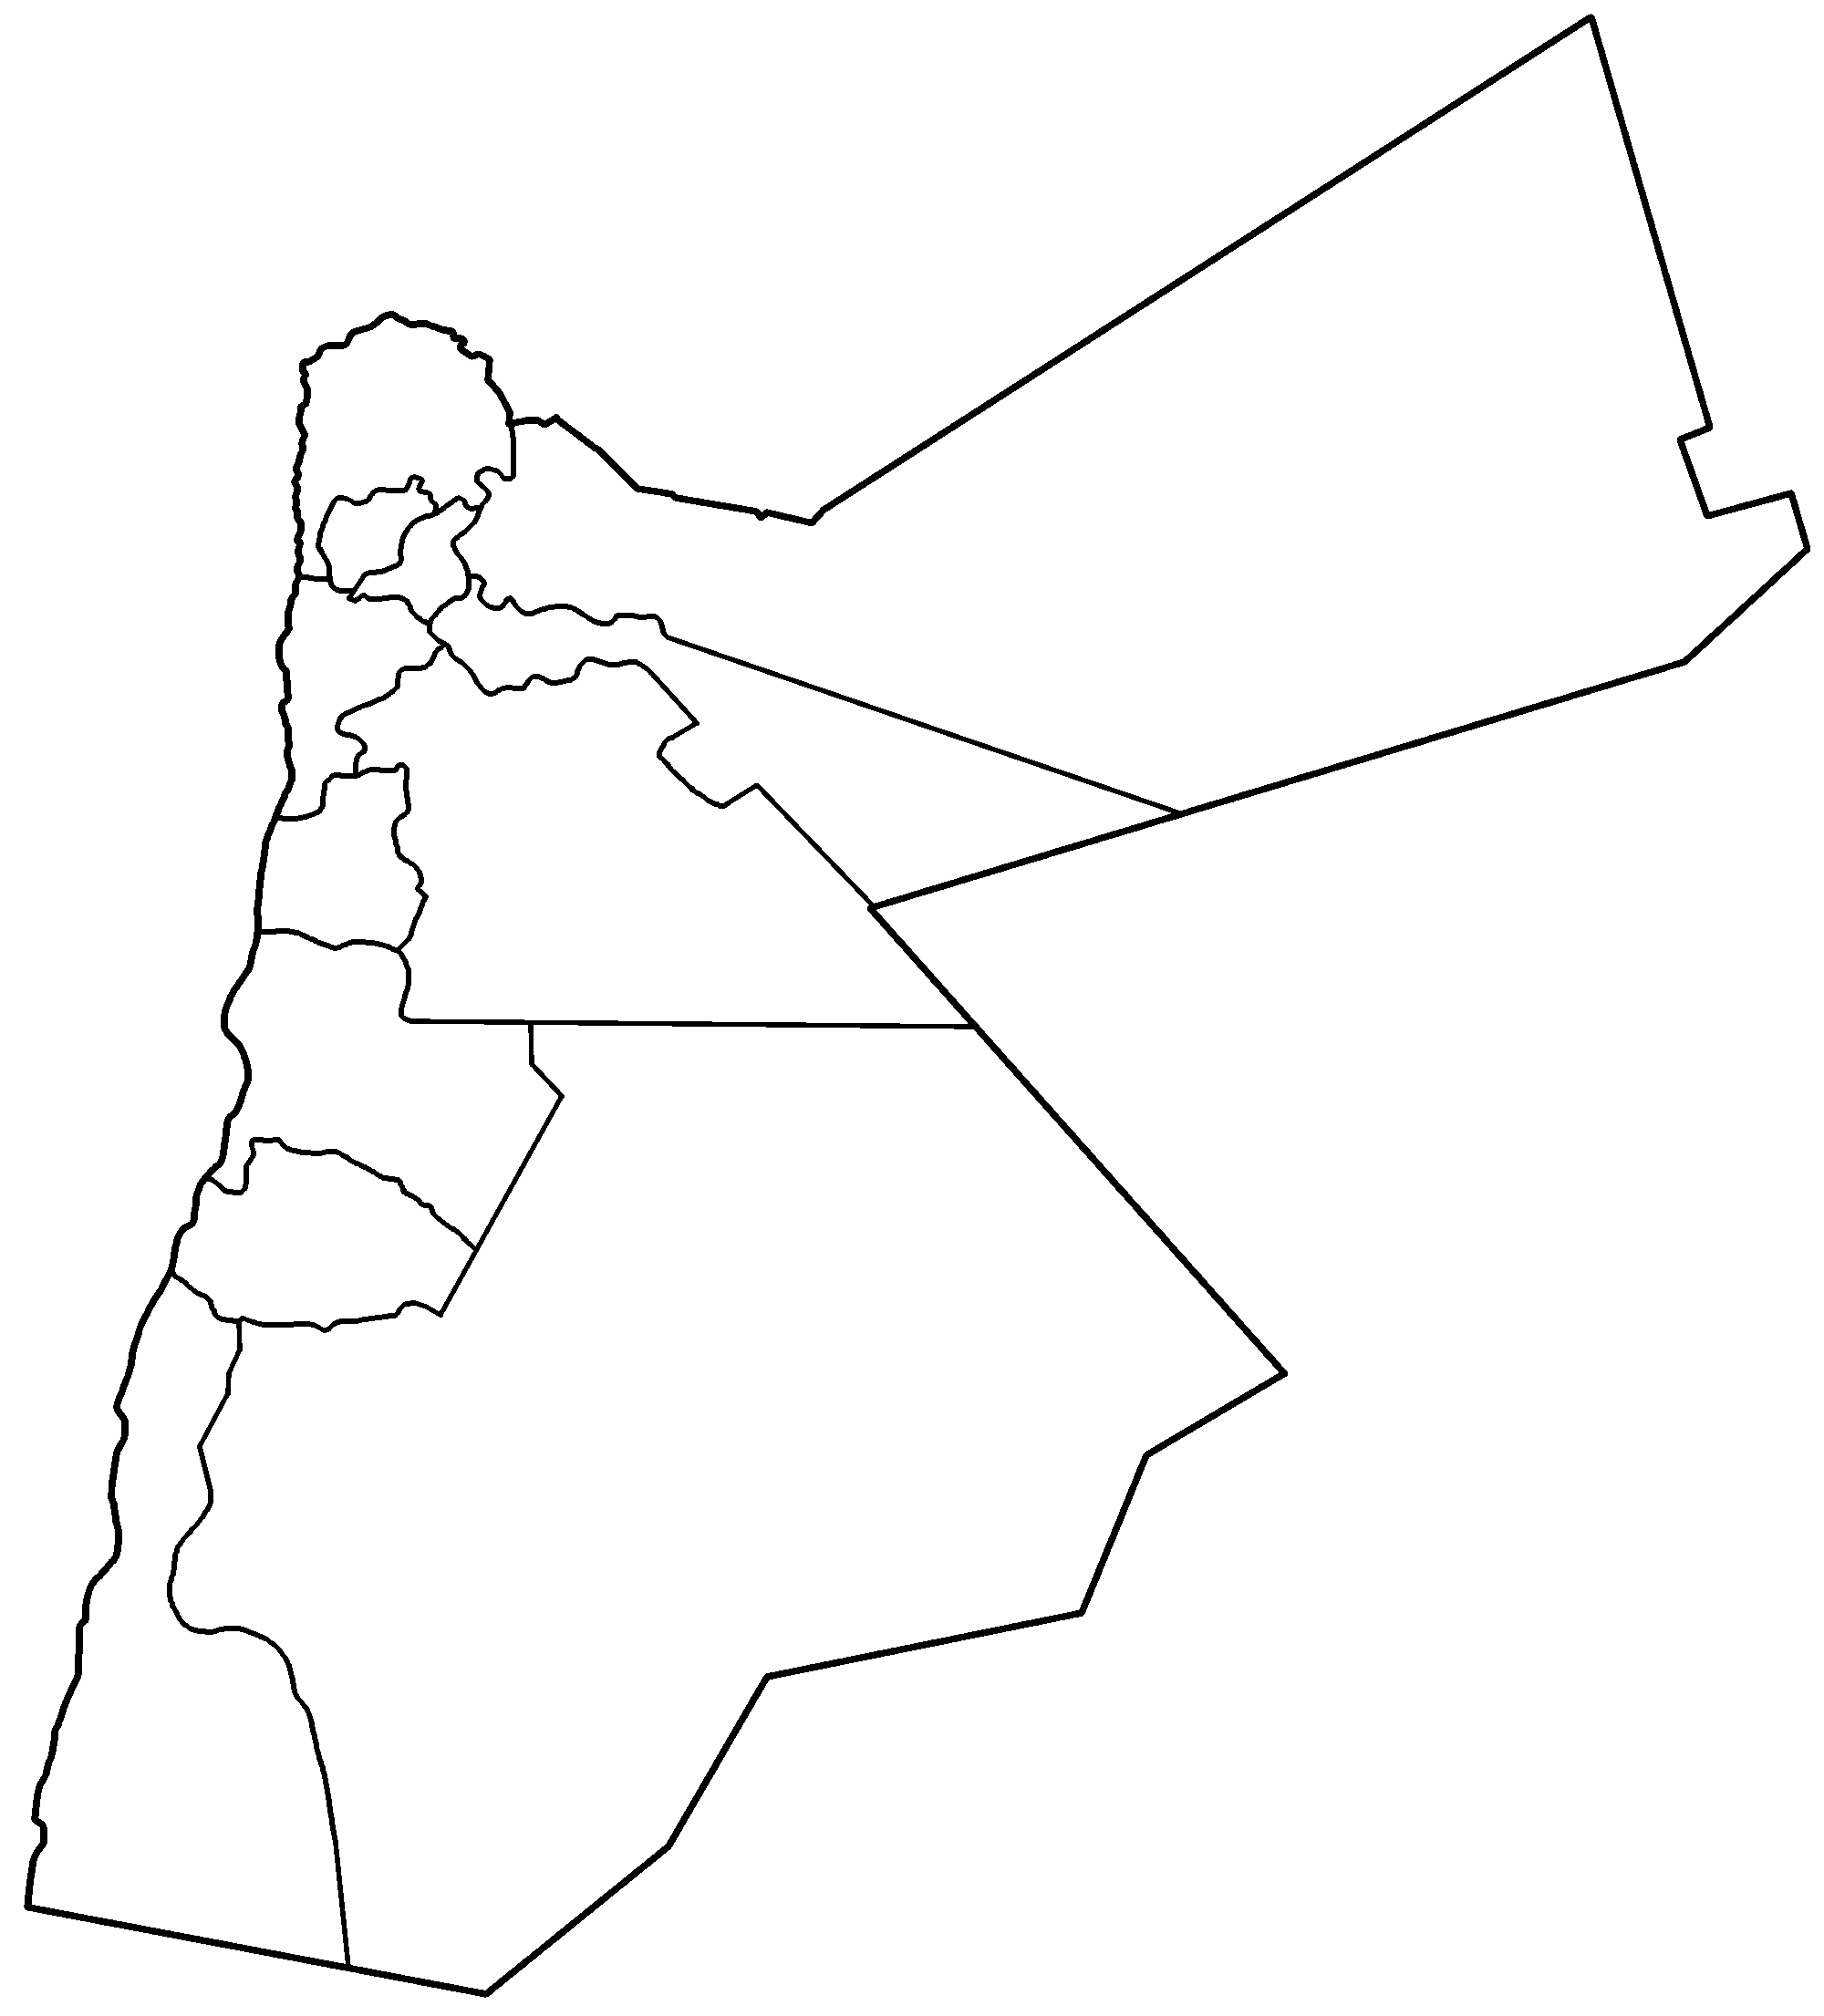 Jordan Governorates Blank